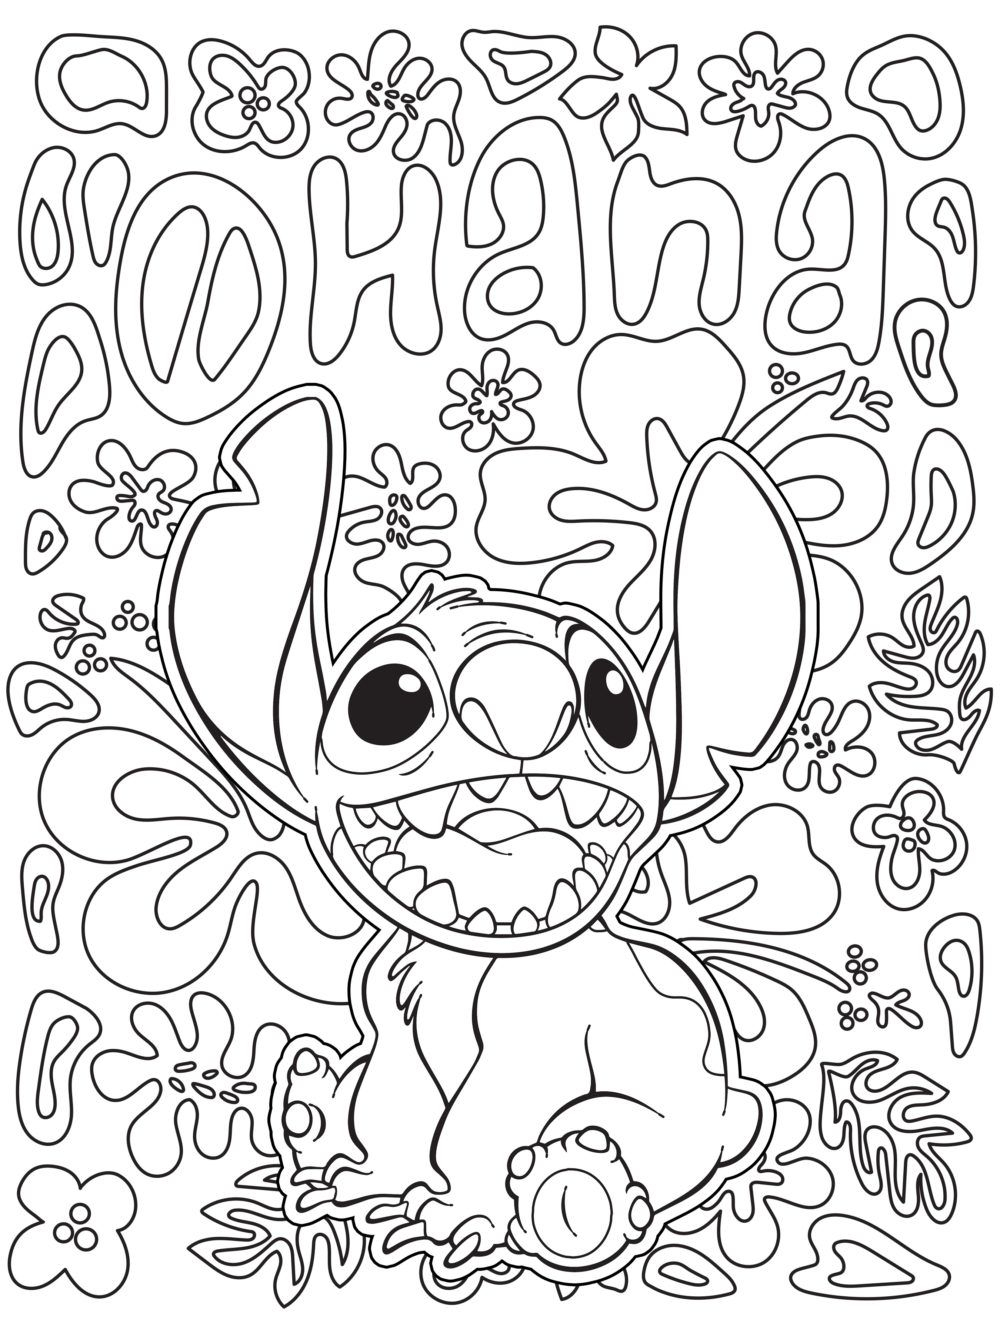 Coloring Disney Pages Disney Coloring Pages For Adults Best Coloring Pages For Kids